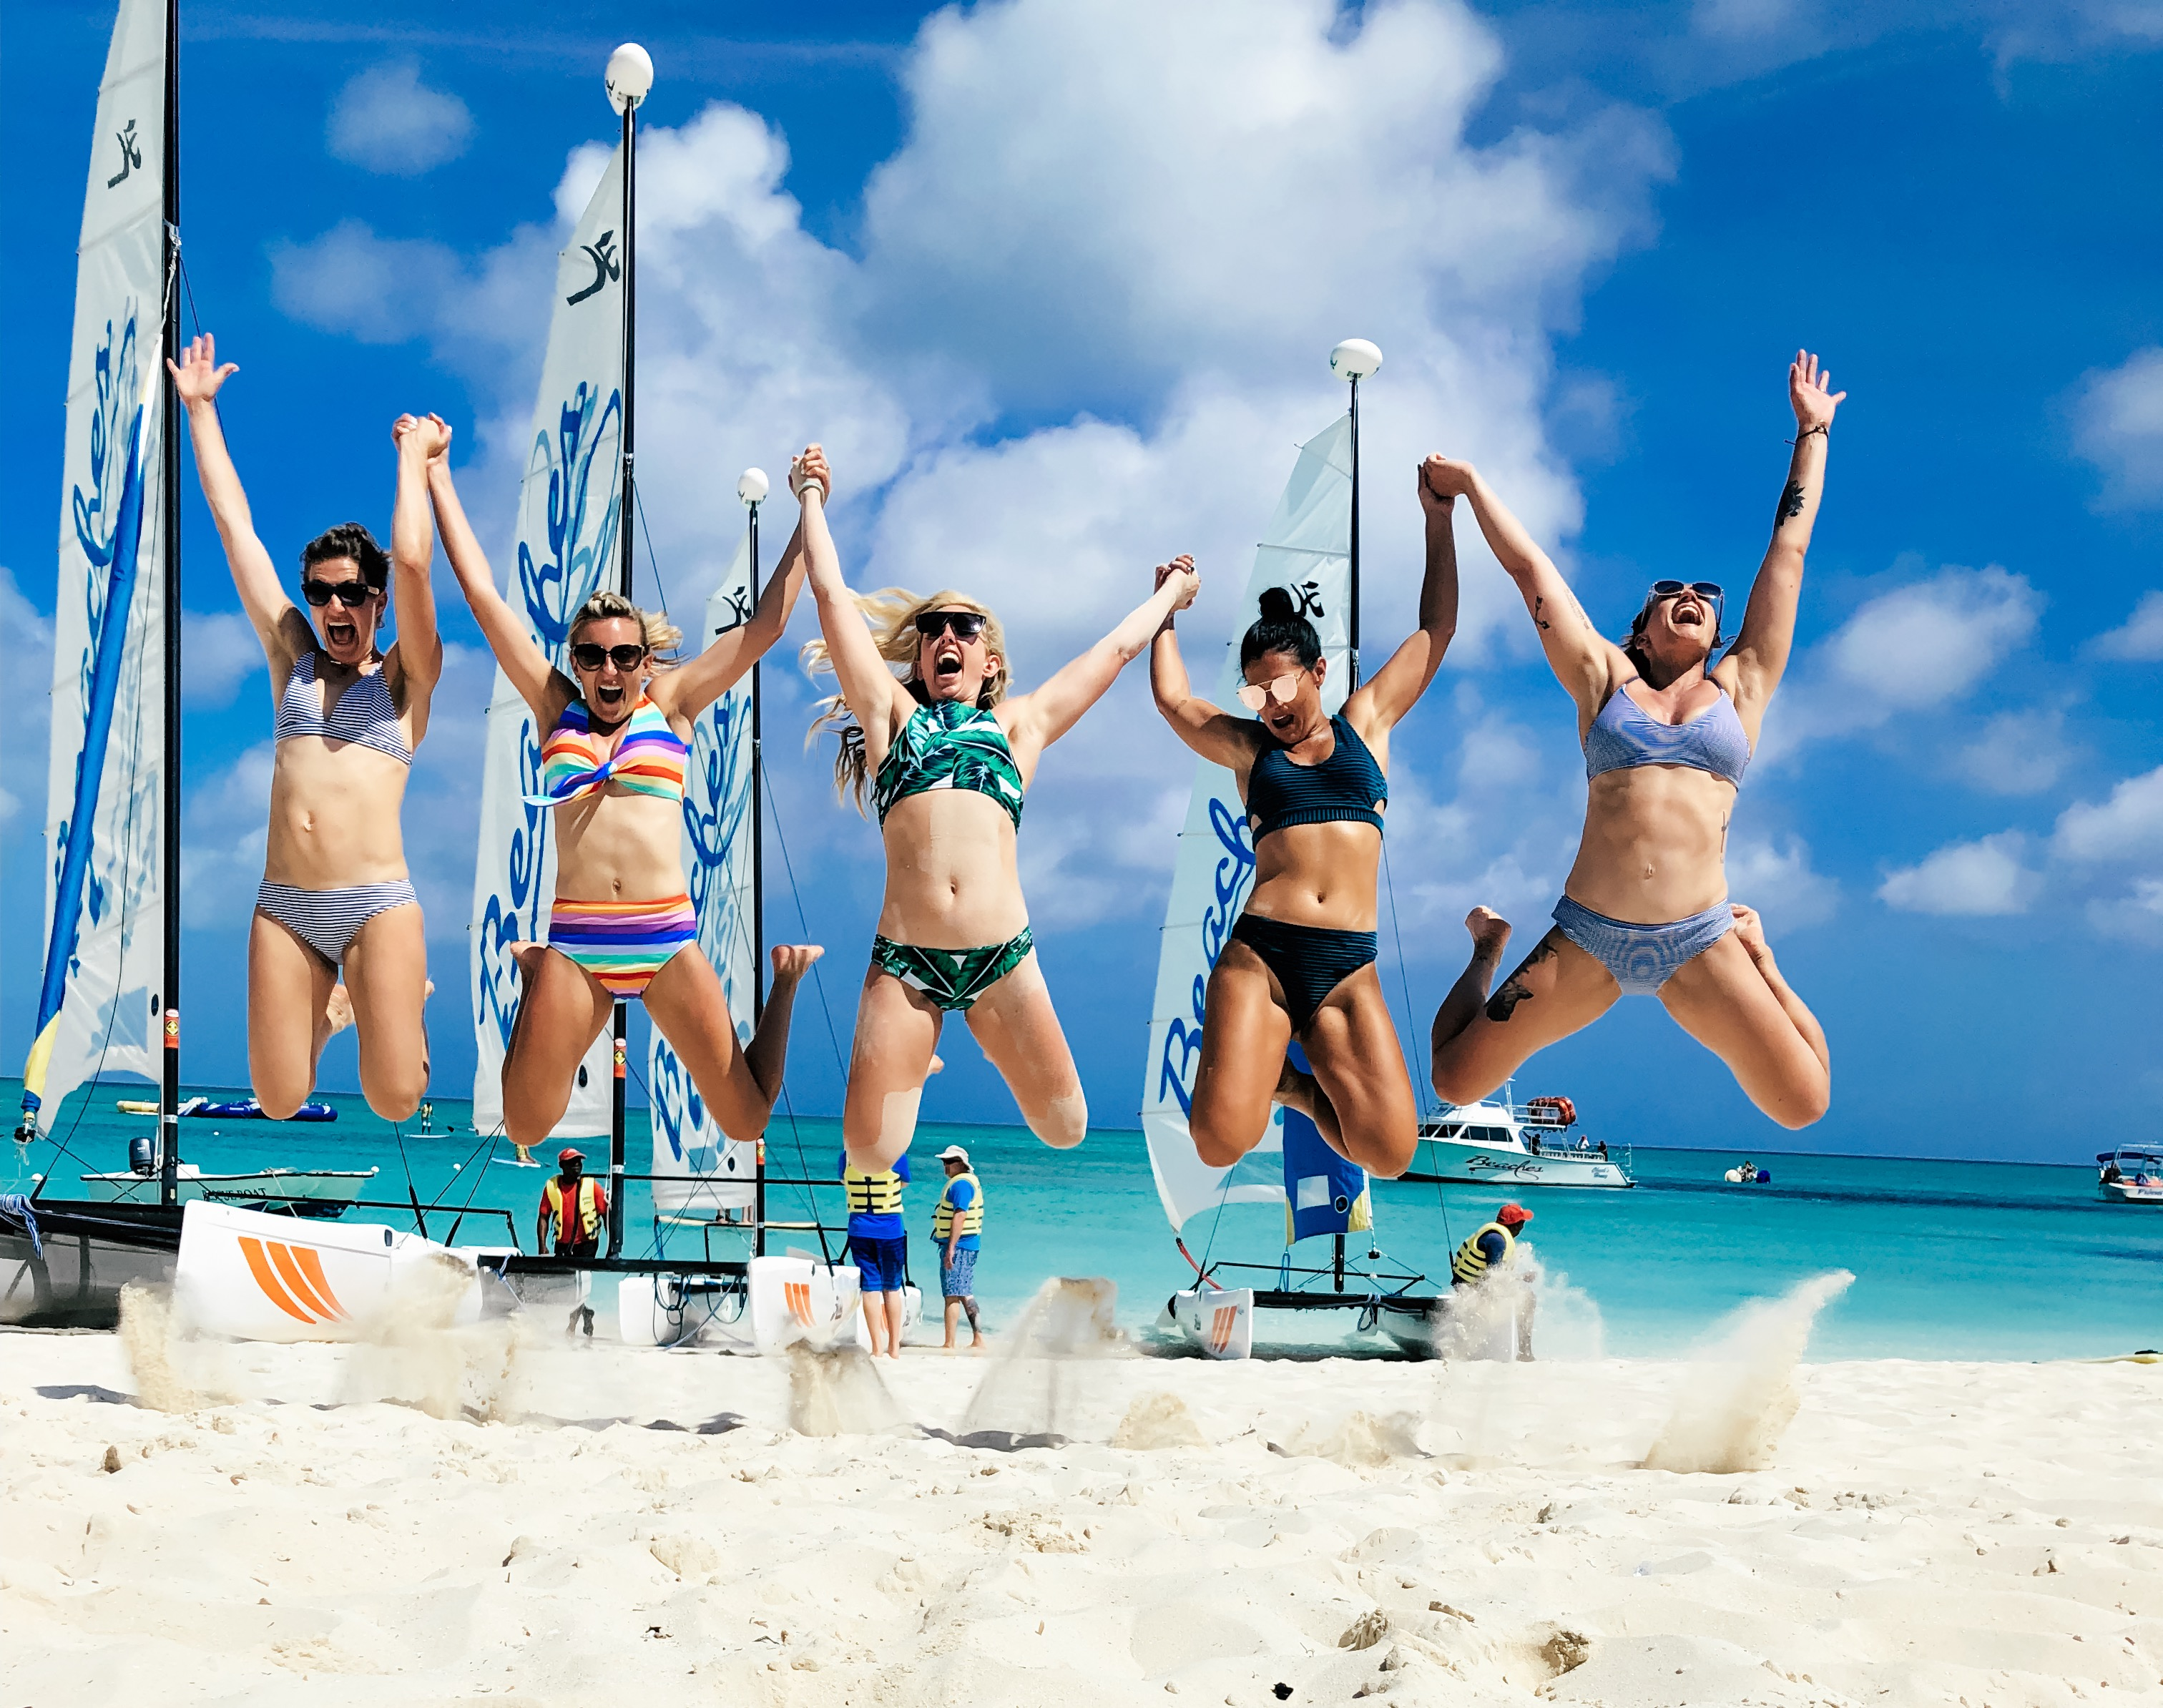 Beaches Resort, Turks and Caicos, Elite Coaches, Elite Retreat, Elite Coach Trip, The Dream Team, Melanie Mitro, Top 10 Coach, Super Star Diamond Coach, Millions Club, Successful Coach, Top Coach